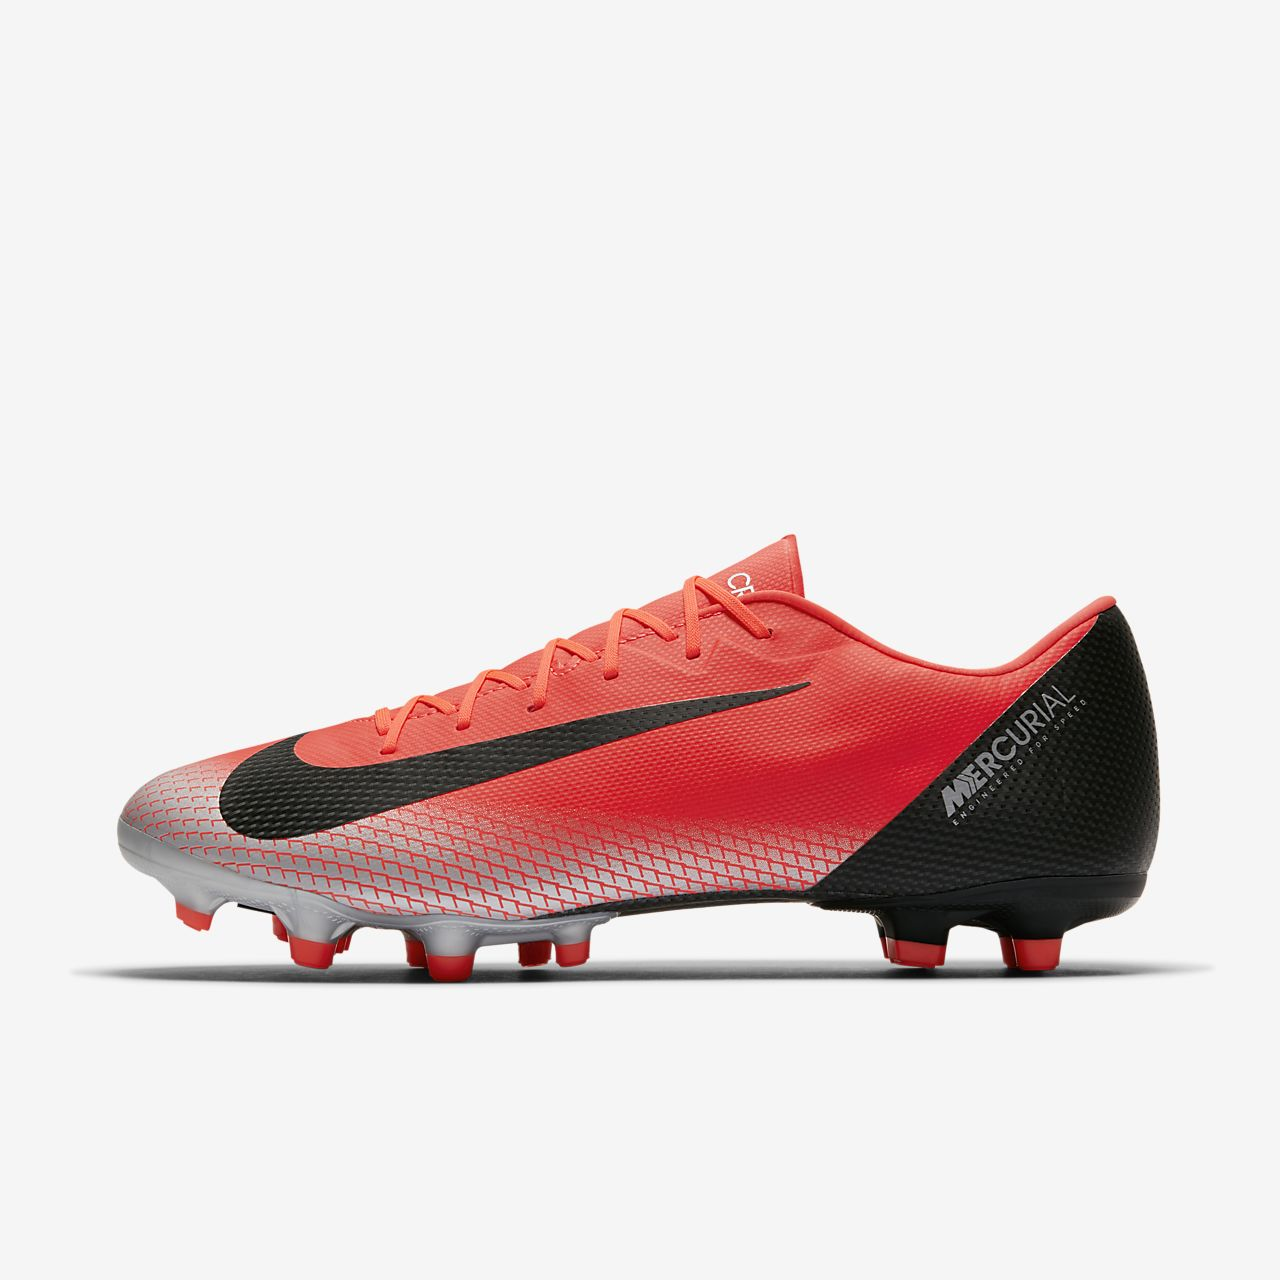 Nike Mercurial Vapor 12 Academy CR7 MG Multi-Ground Football Boot ... 07e3d094a797